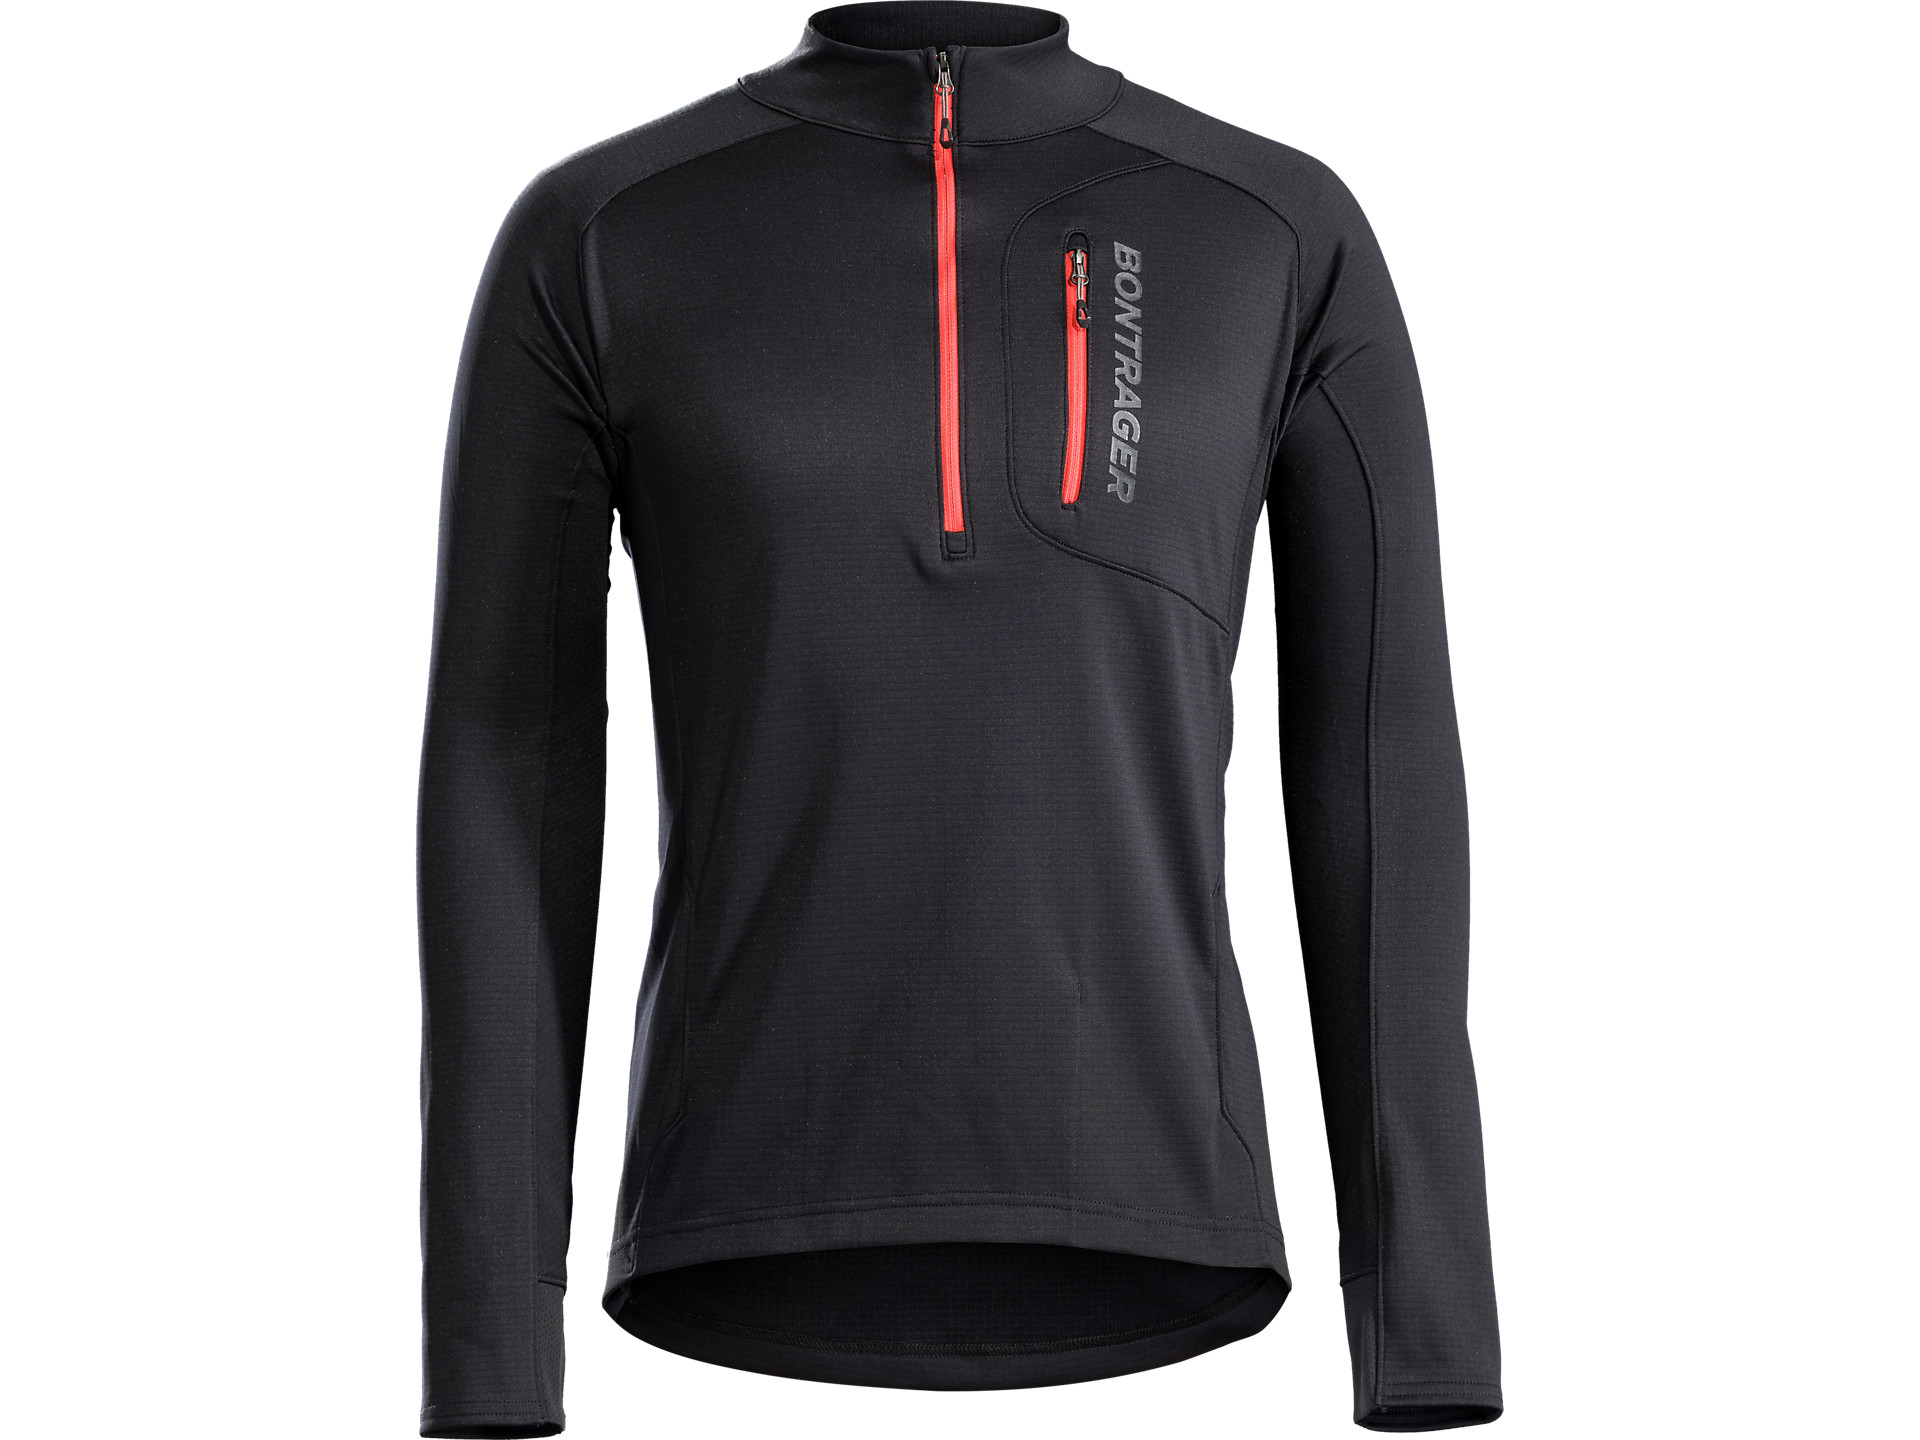 657dab6db Bontrager Evoke Thermal Long Sleeve Cycling Jersey